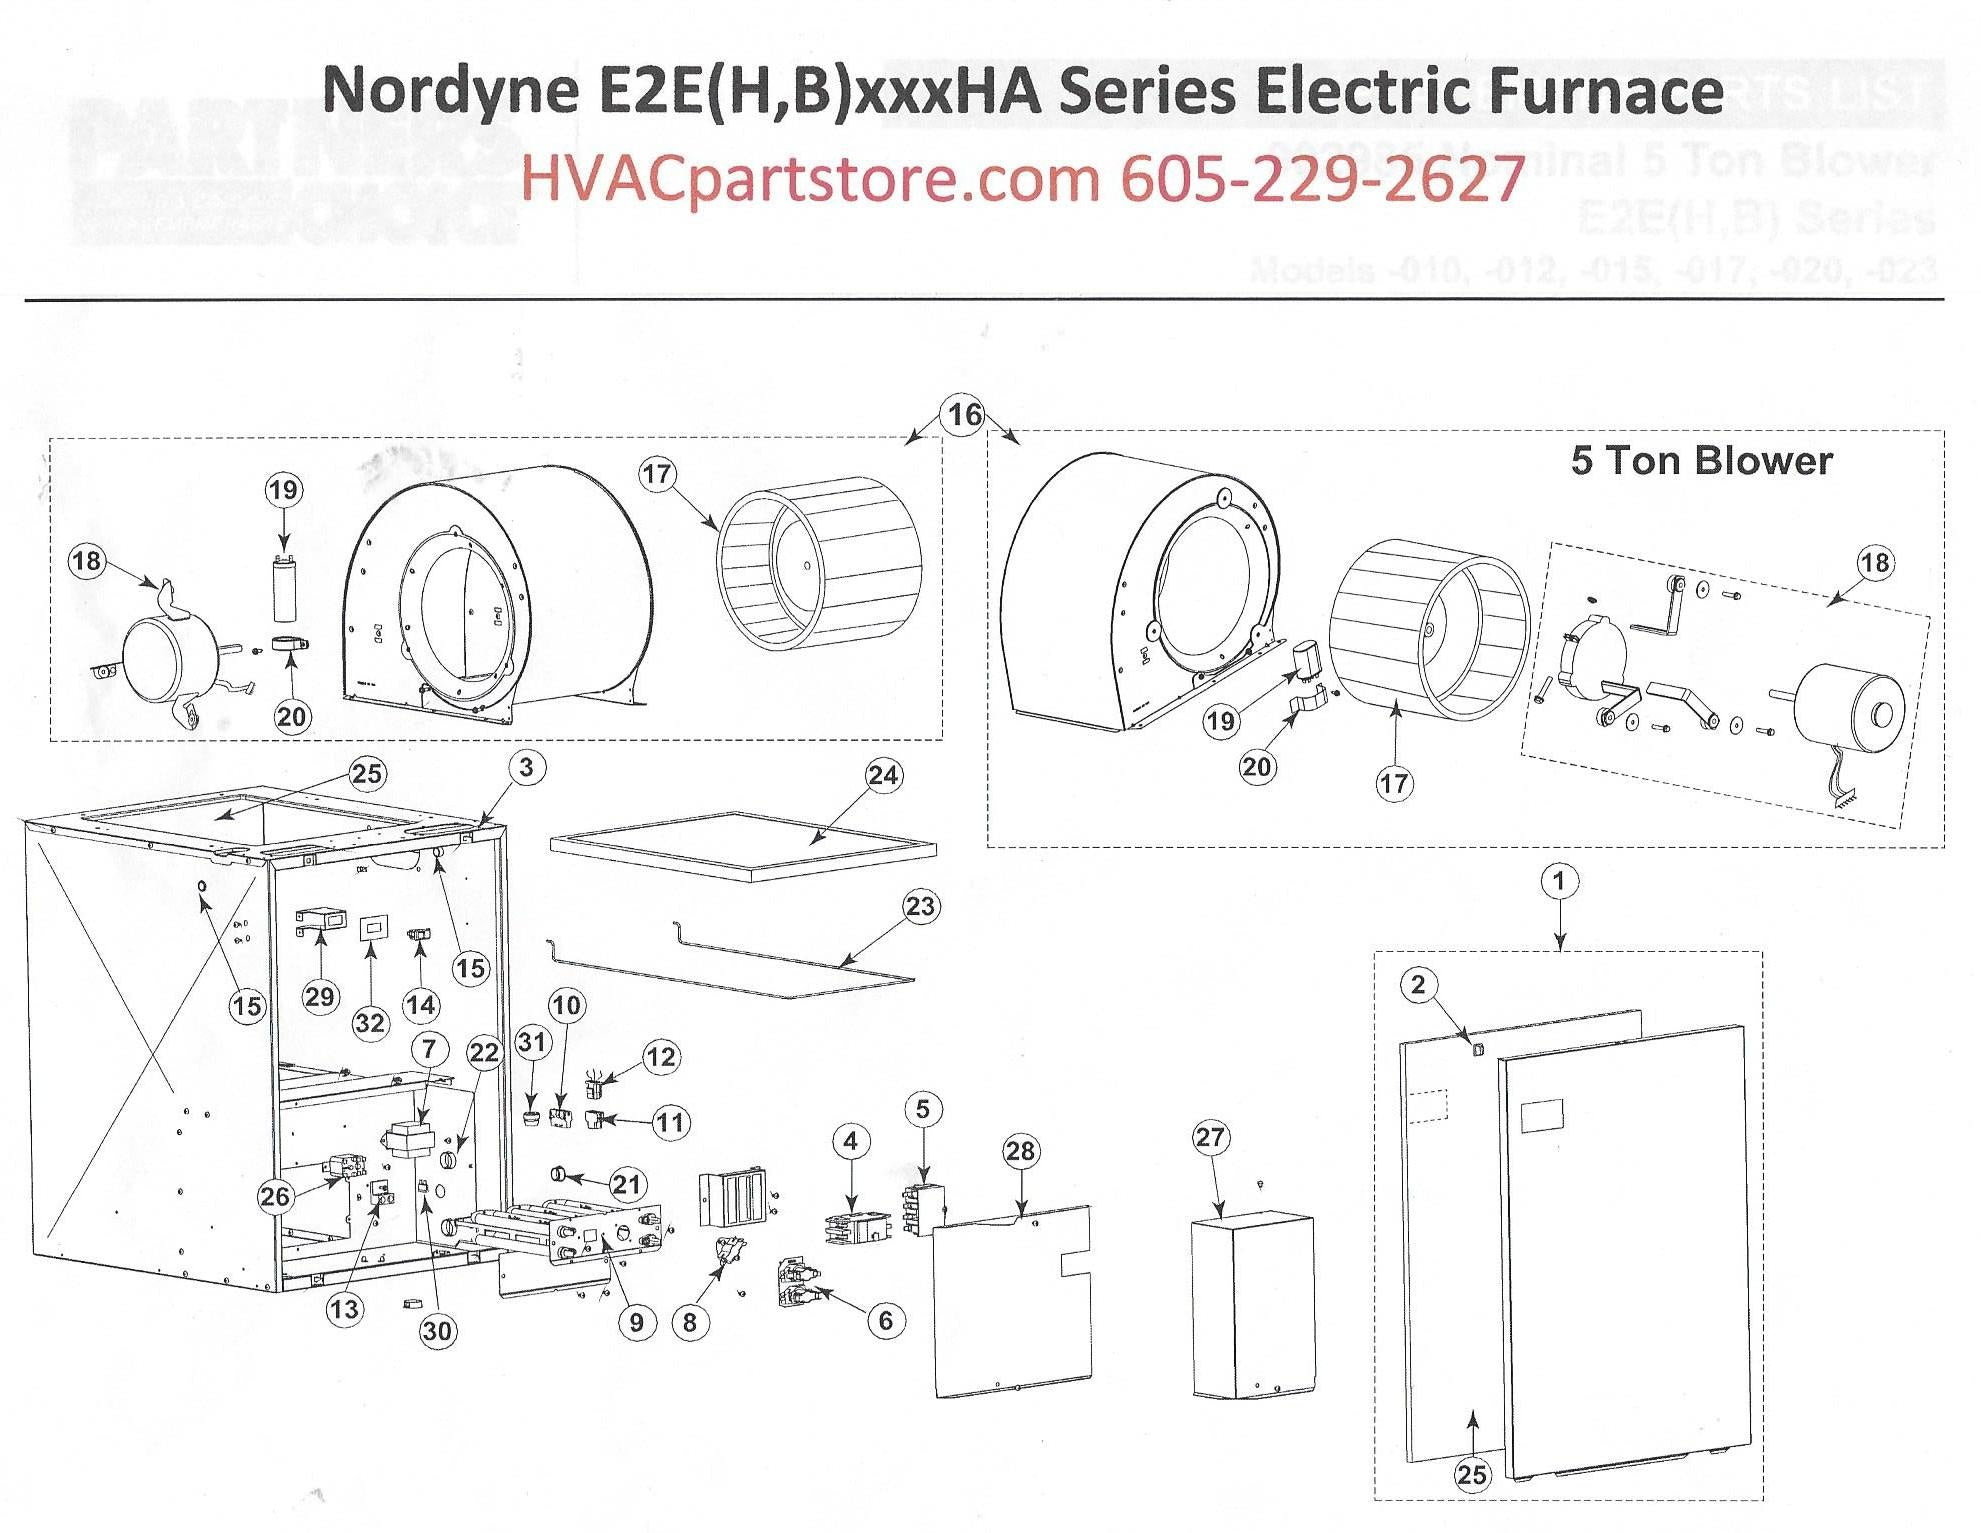 E2HADiagram_f0f076ea fd94 4d7b 8e49 0d9e07172c60?14699803936429464575 e2eb012ha nordyne electric furnace parts hvacpartstore wiring diagram for intertherm electric furnace at bayanpartner.co